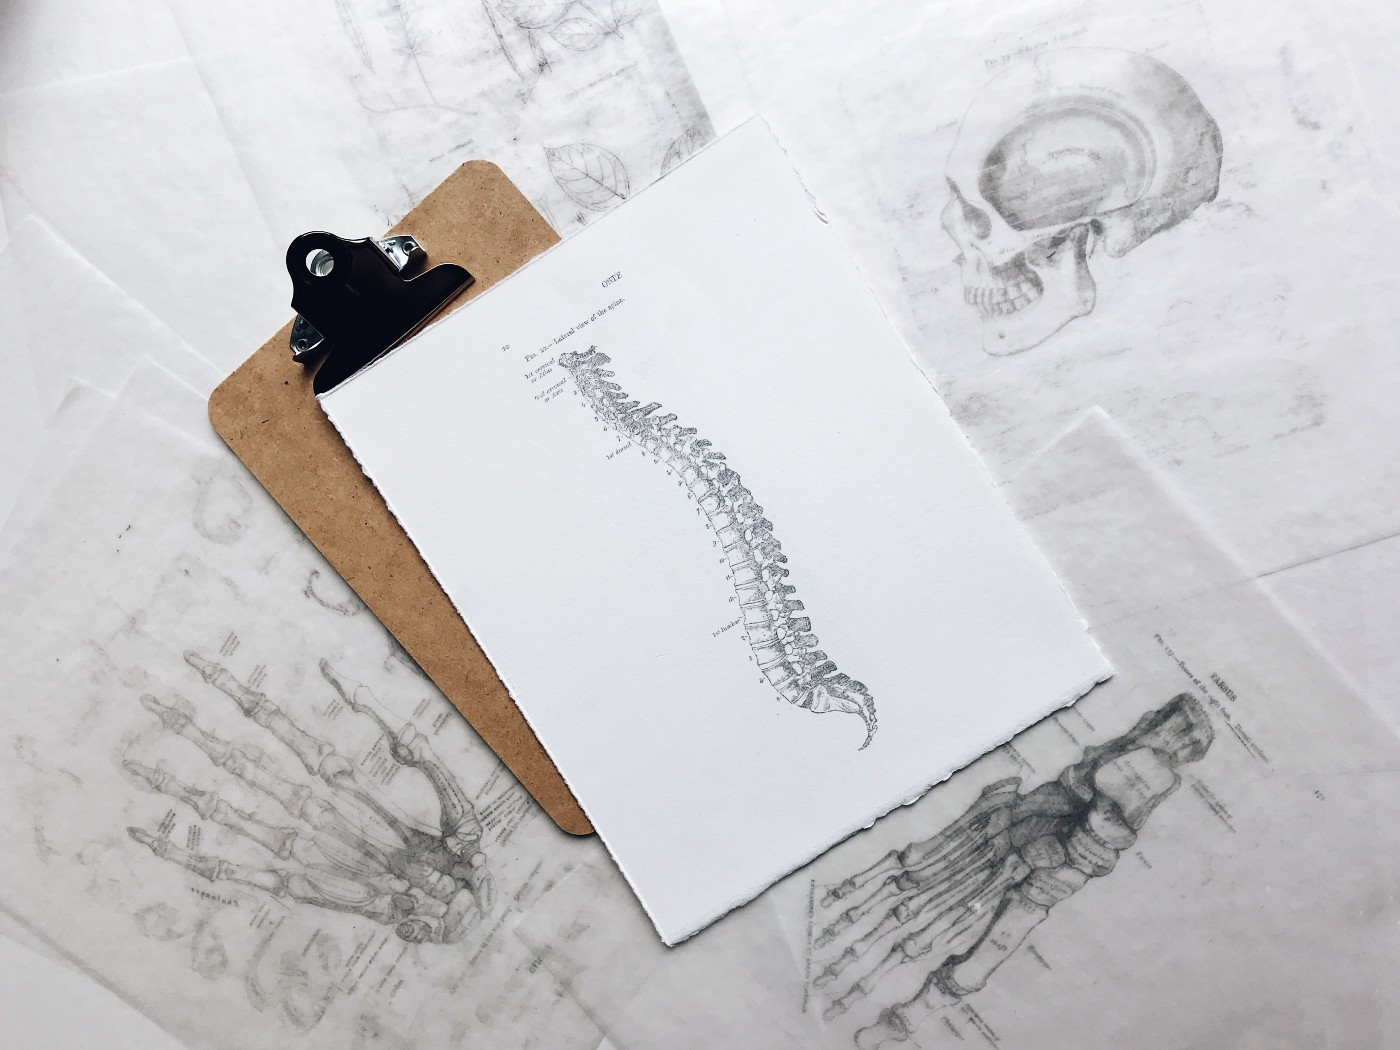 White Pice of paper with penciled illustration of spine on top of brown clip board, surrounded by other penciled drawings of the profile of a skull, a hand, and a foot.